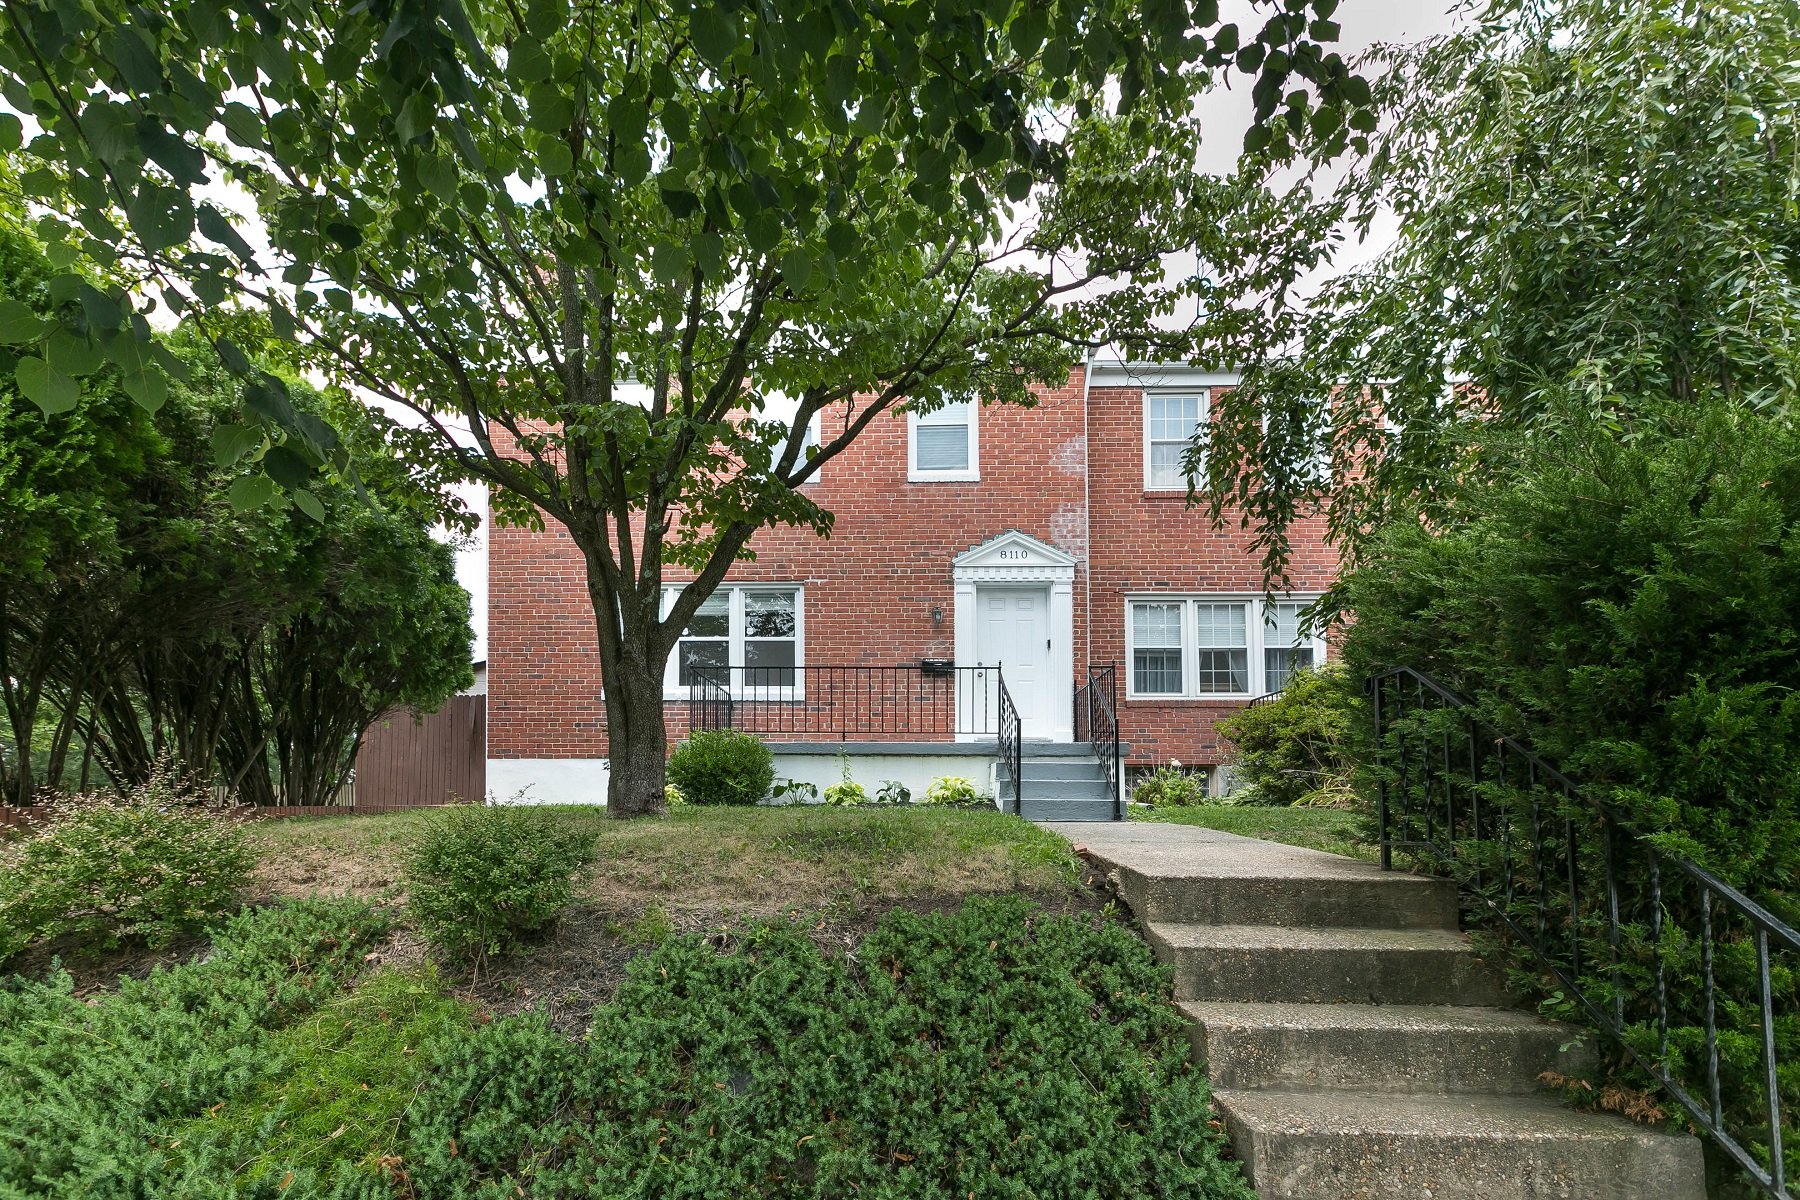 Single Family Home for Sale at Loch Raven Village 8110 Loch Raven Boulevard, Baltimore, Maryland, 21286 United States